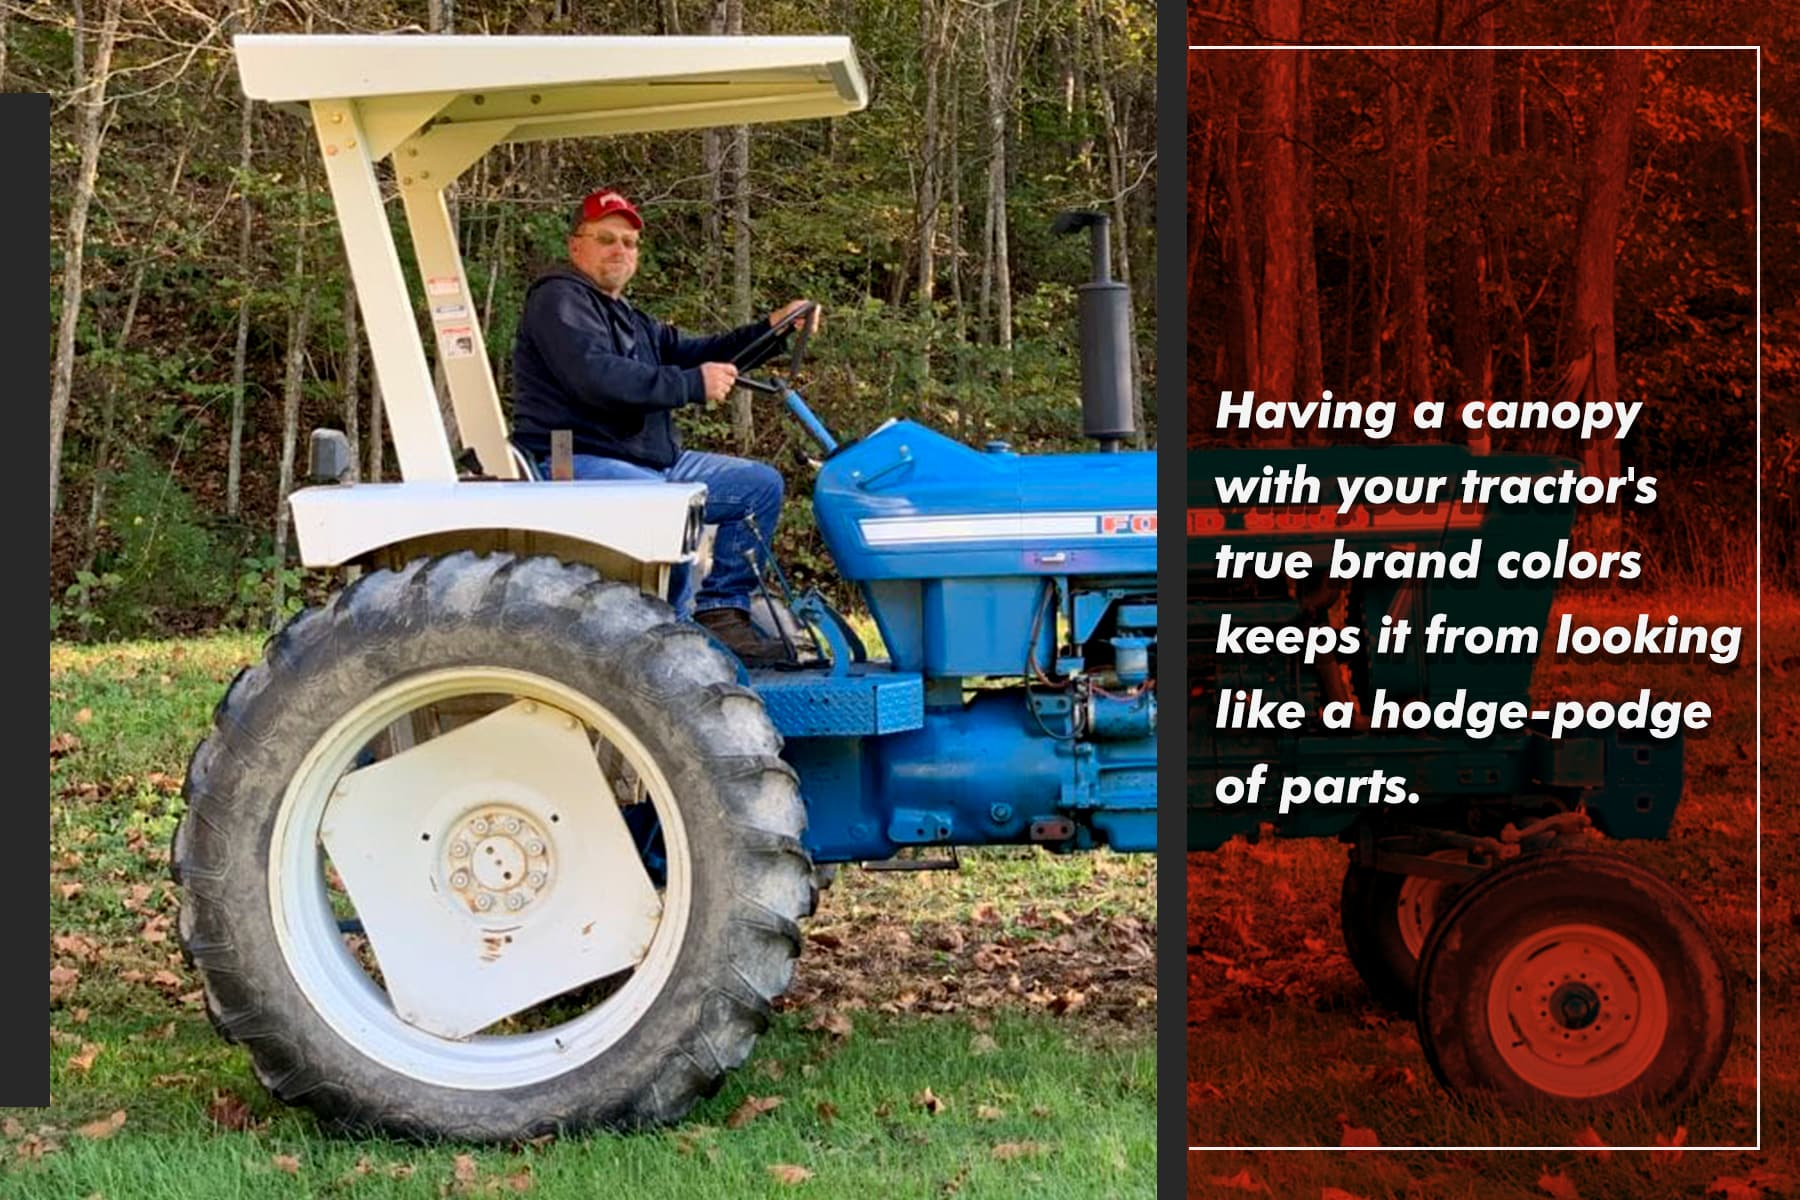 a good canopy helps you be proud of your tractor